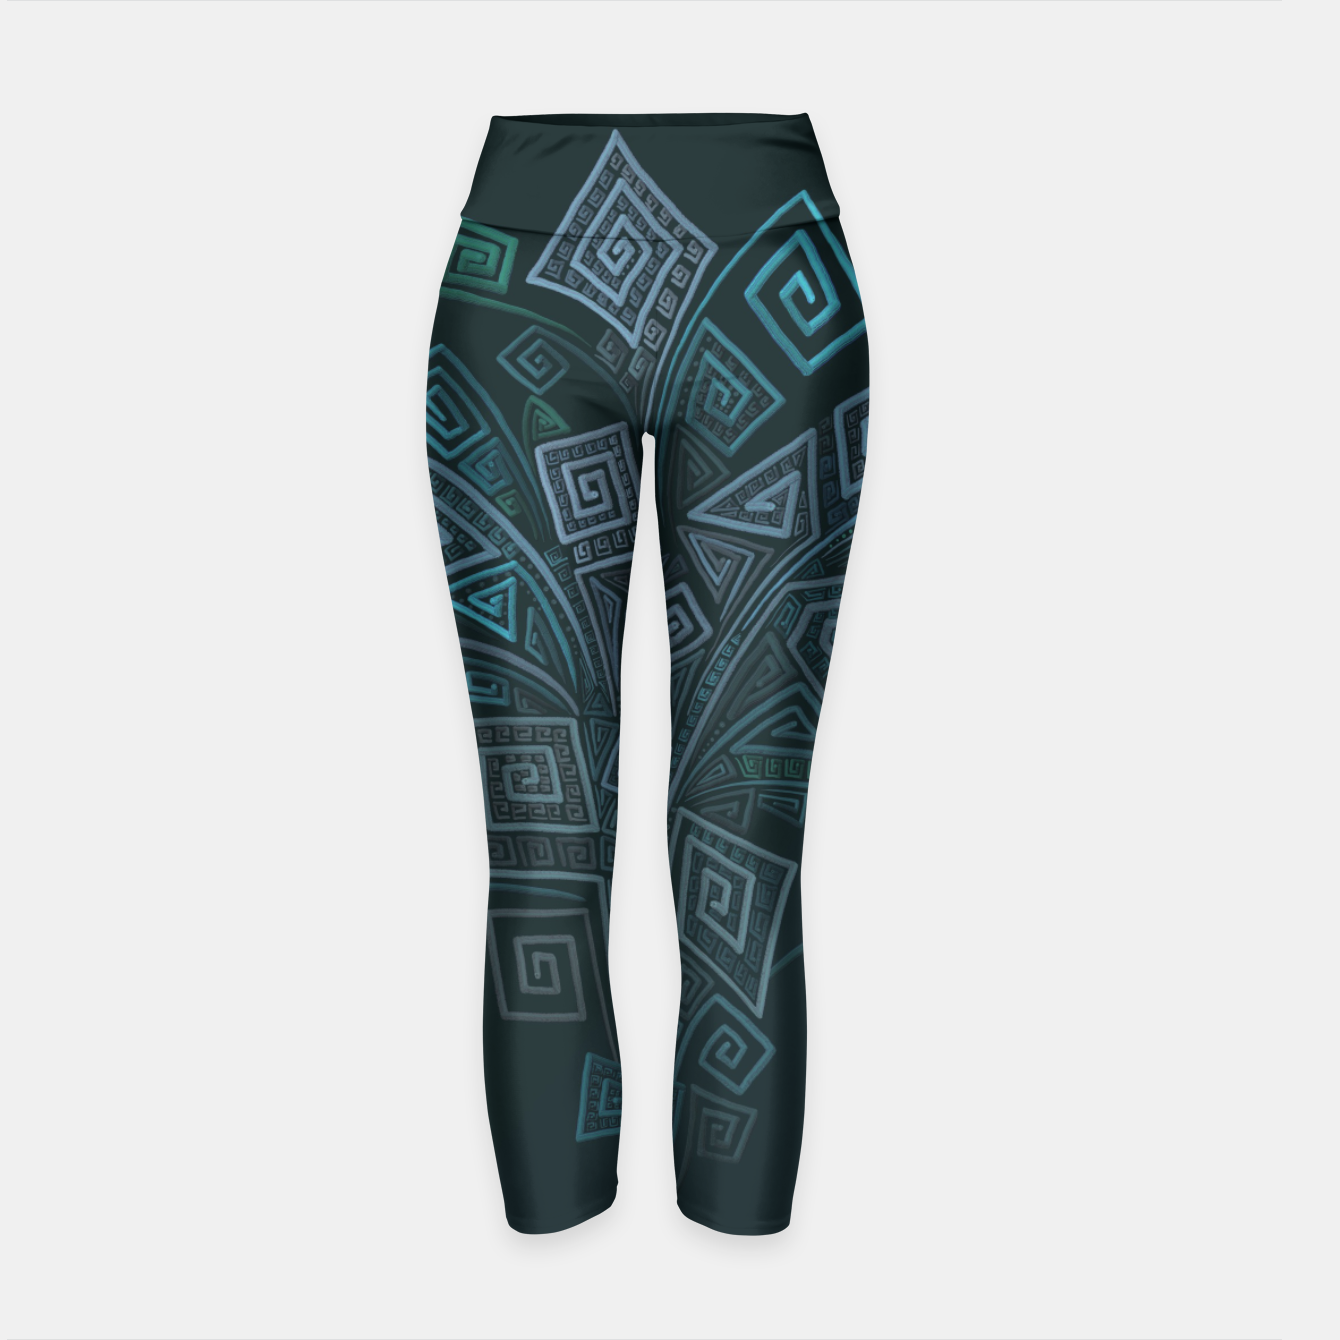 3D Psychedelic Square Explosion Yoga Pants  by Ivana.One